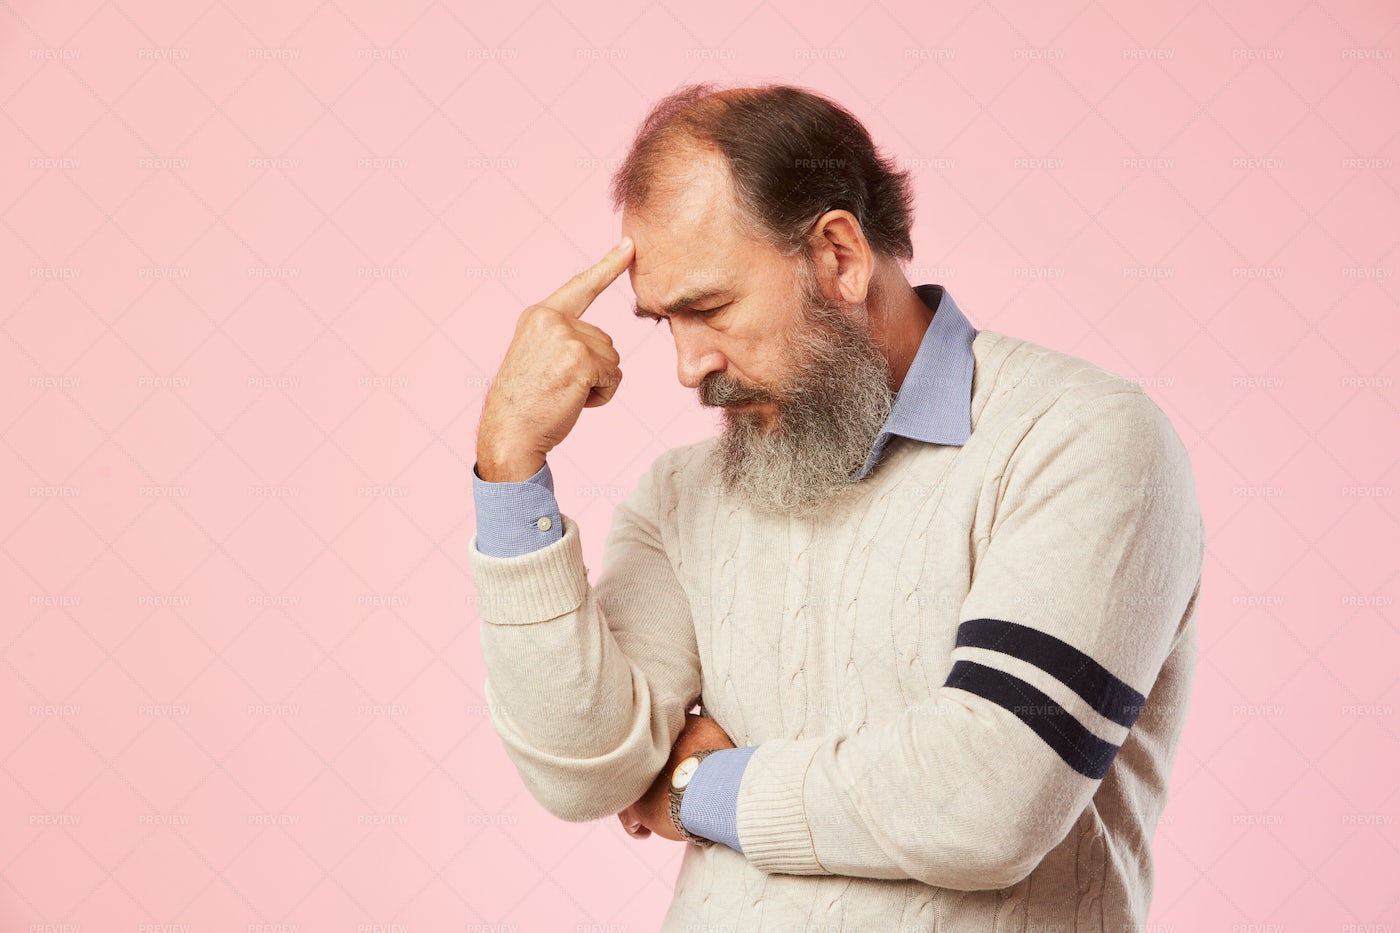 Man Looking Pensively: Stock Photos